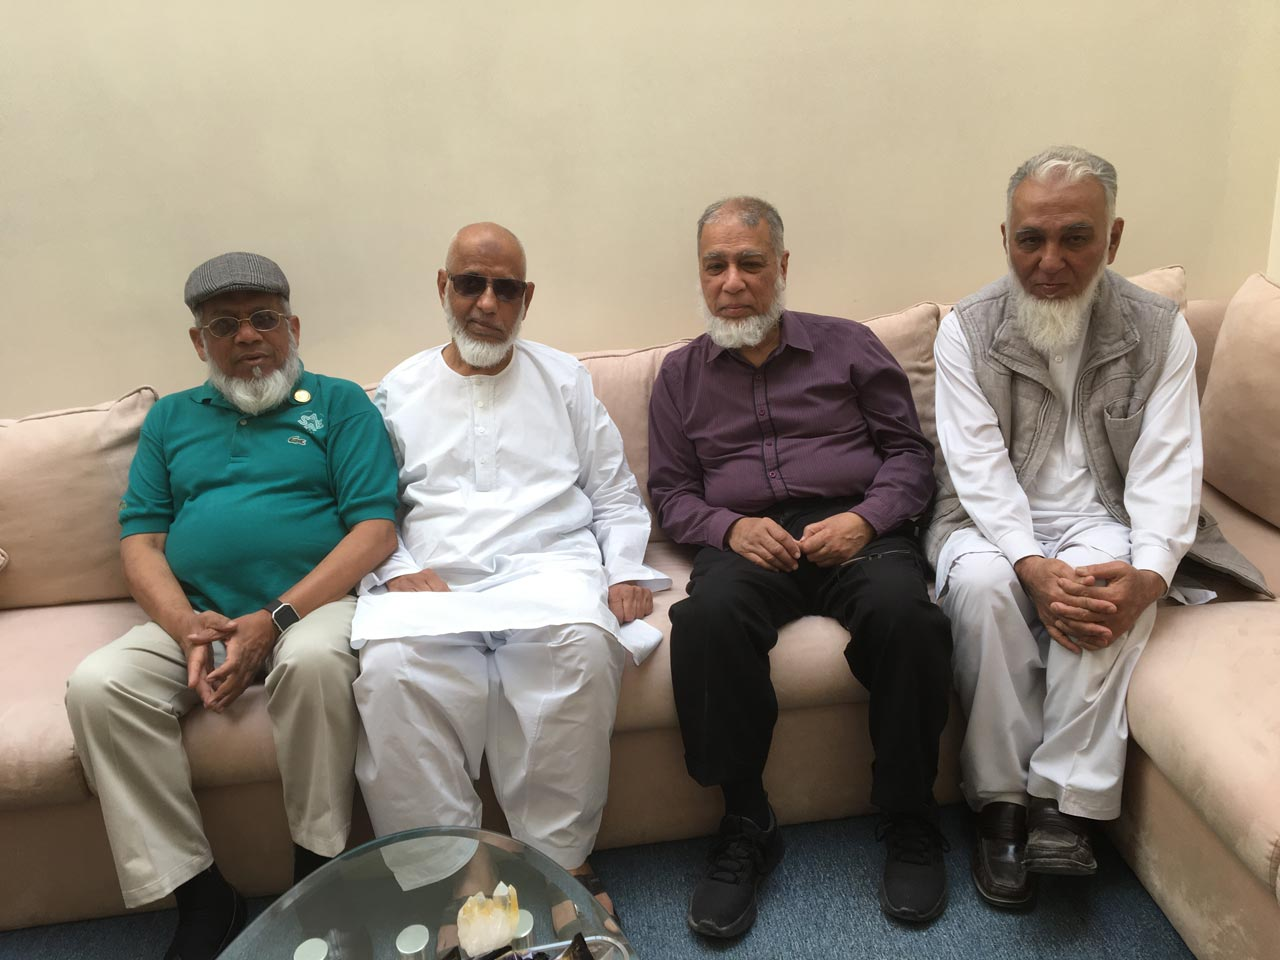 Iqbal Ahmed Khan, Iqbal Hameed, Khalid Iqbal, Abid Iqbal